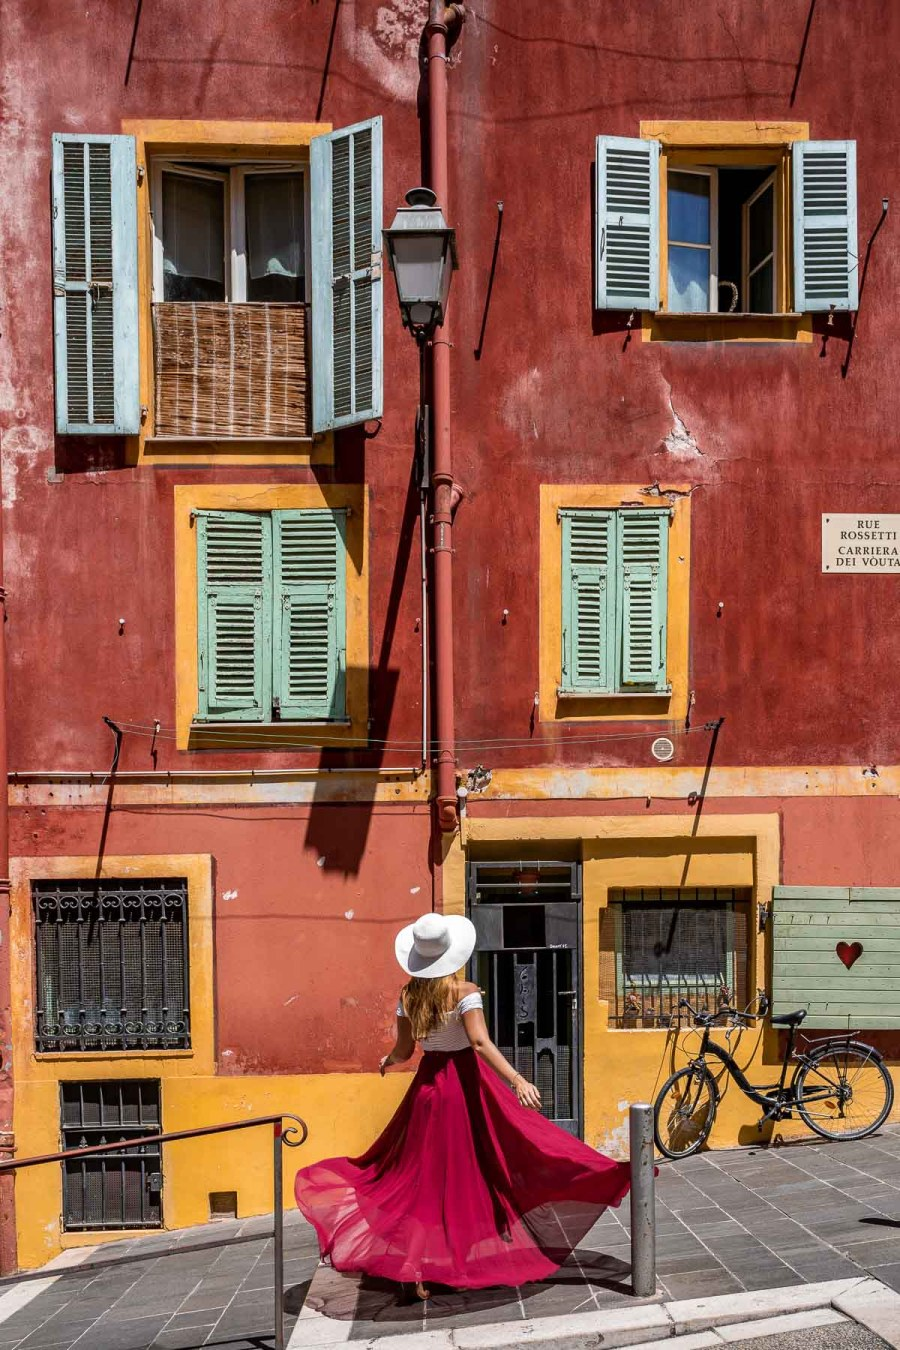 Girl in a red dress twirling in front of a colorful building in Nice, France